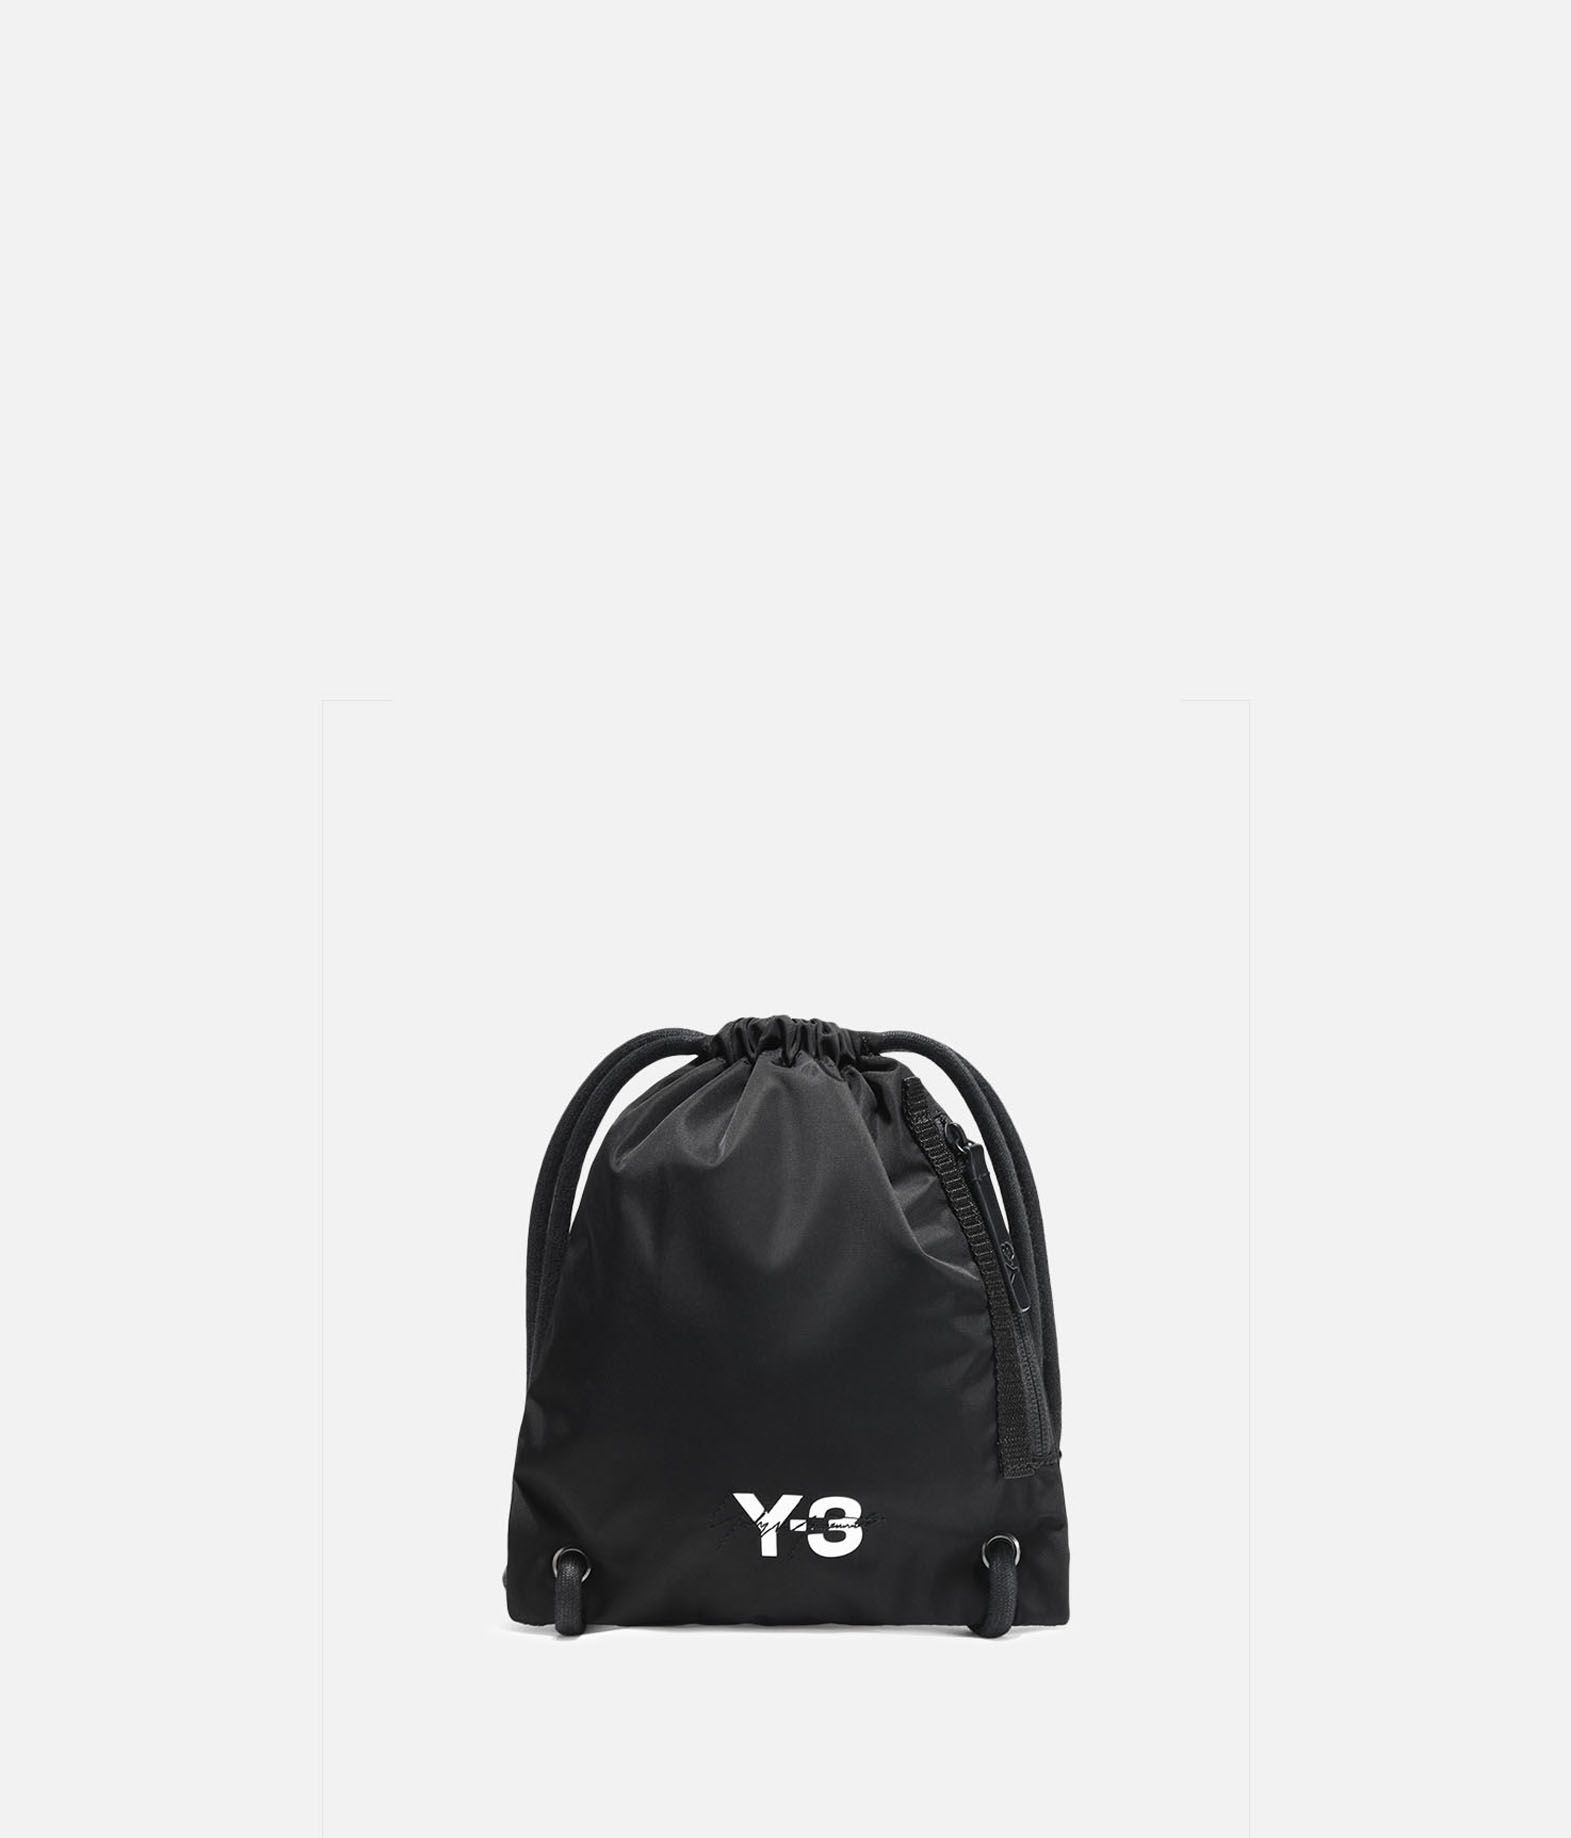 Y-3 Y-3 Mini Gym Bag Sporttasche E d